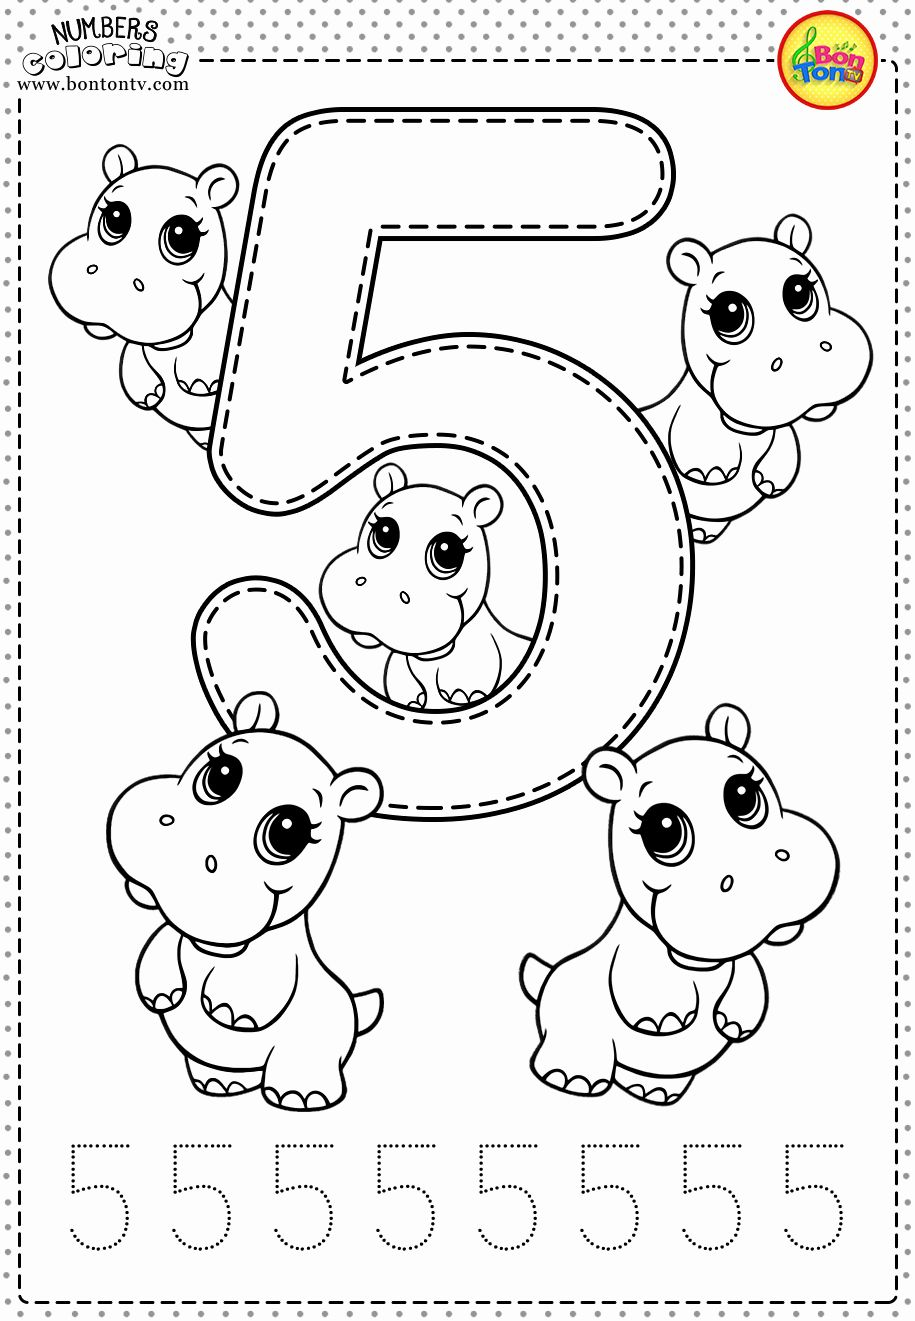 Printable Animal Coloring Sheets Unique Number 5 Preschool Printables Free Free Preschool Printables Preschool Worksheets Free Printables Kids Learning Numbers